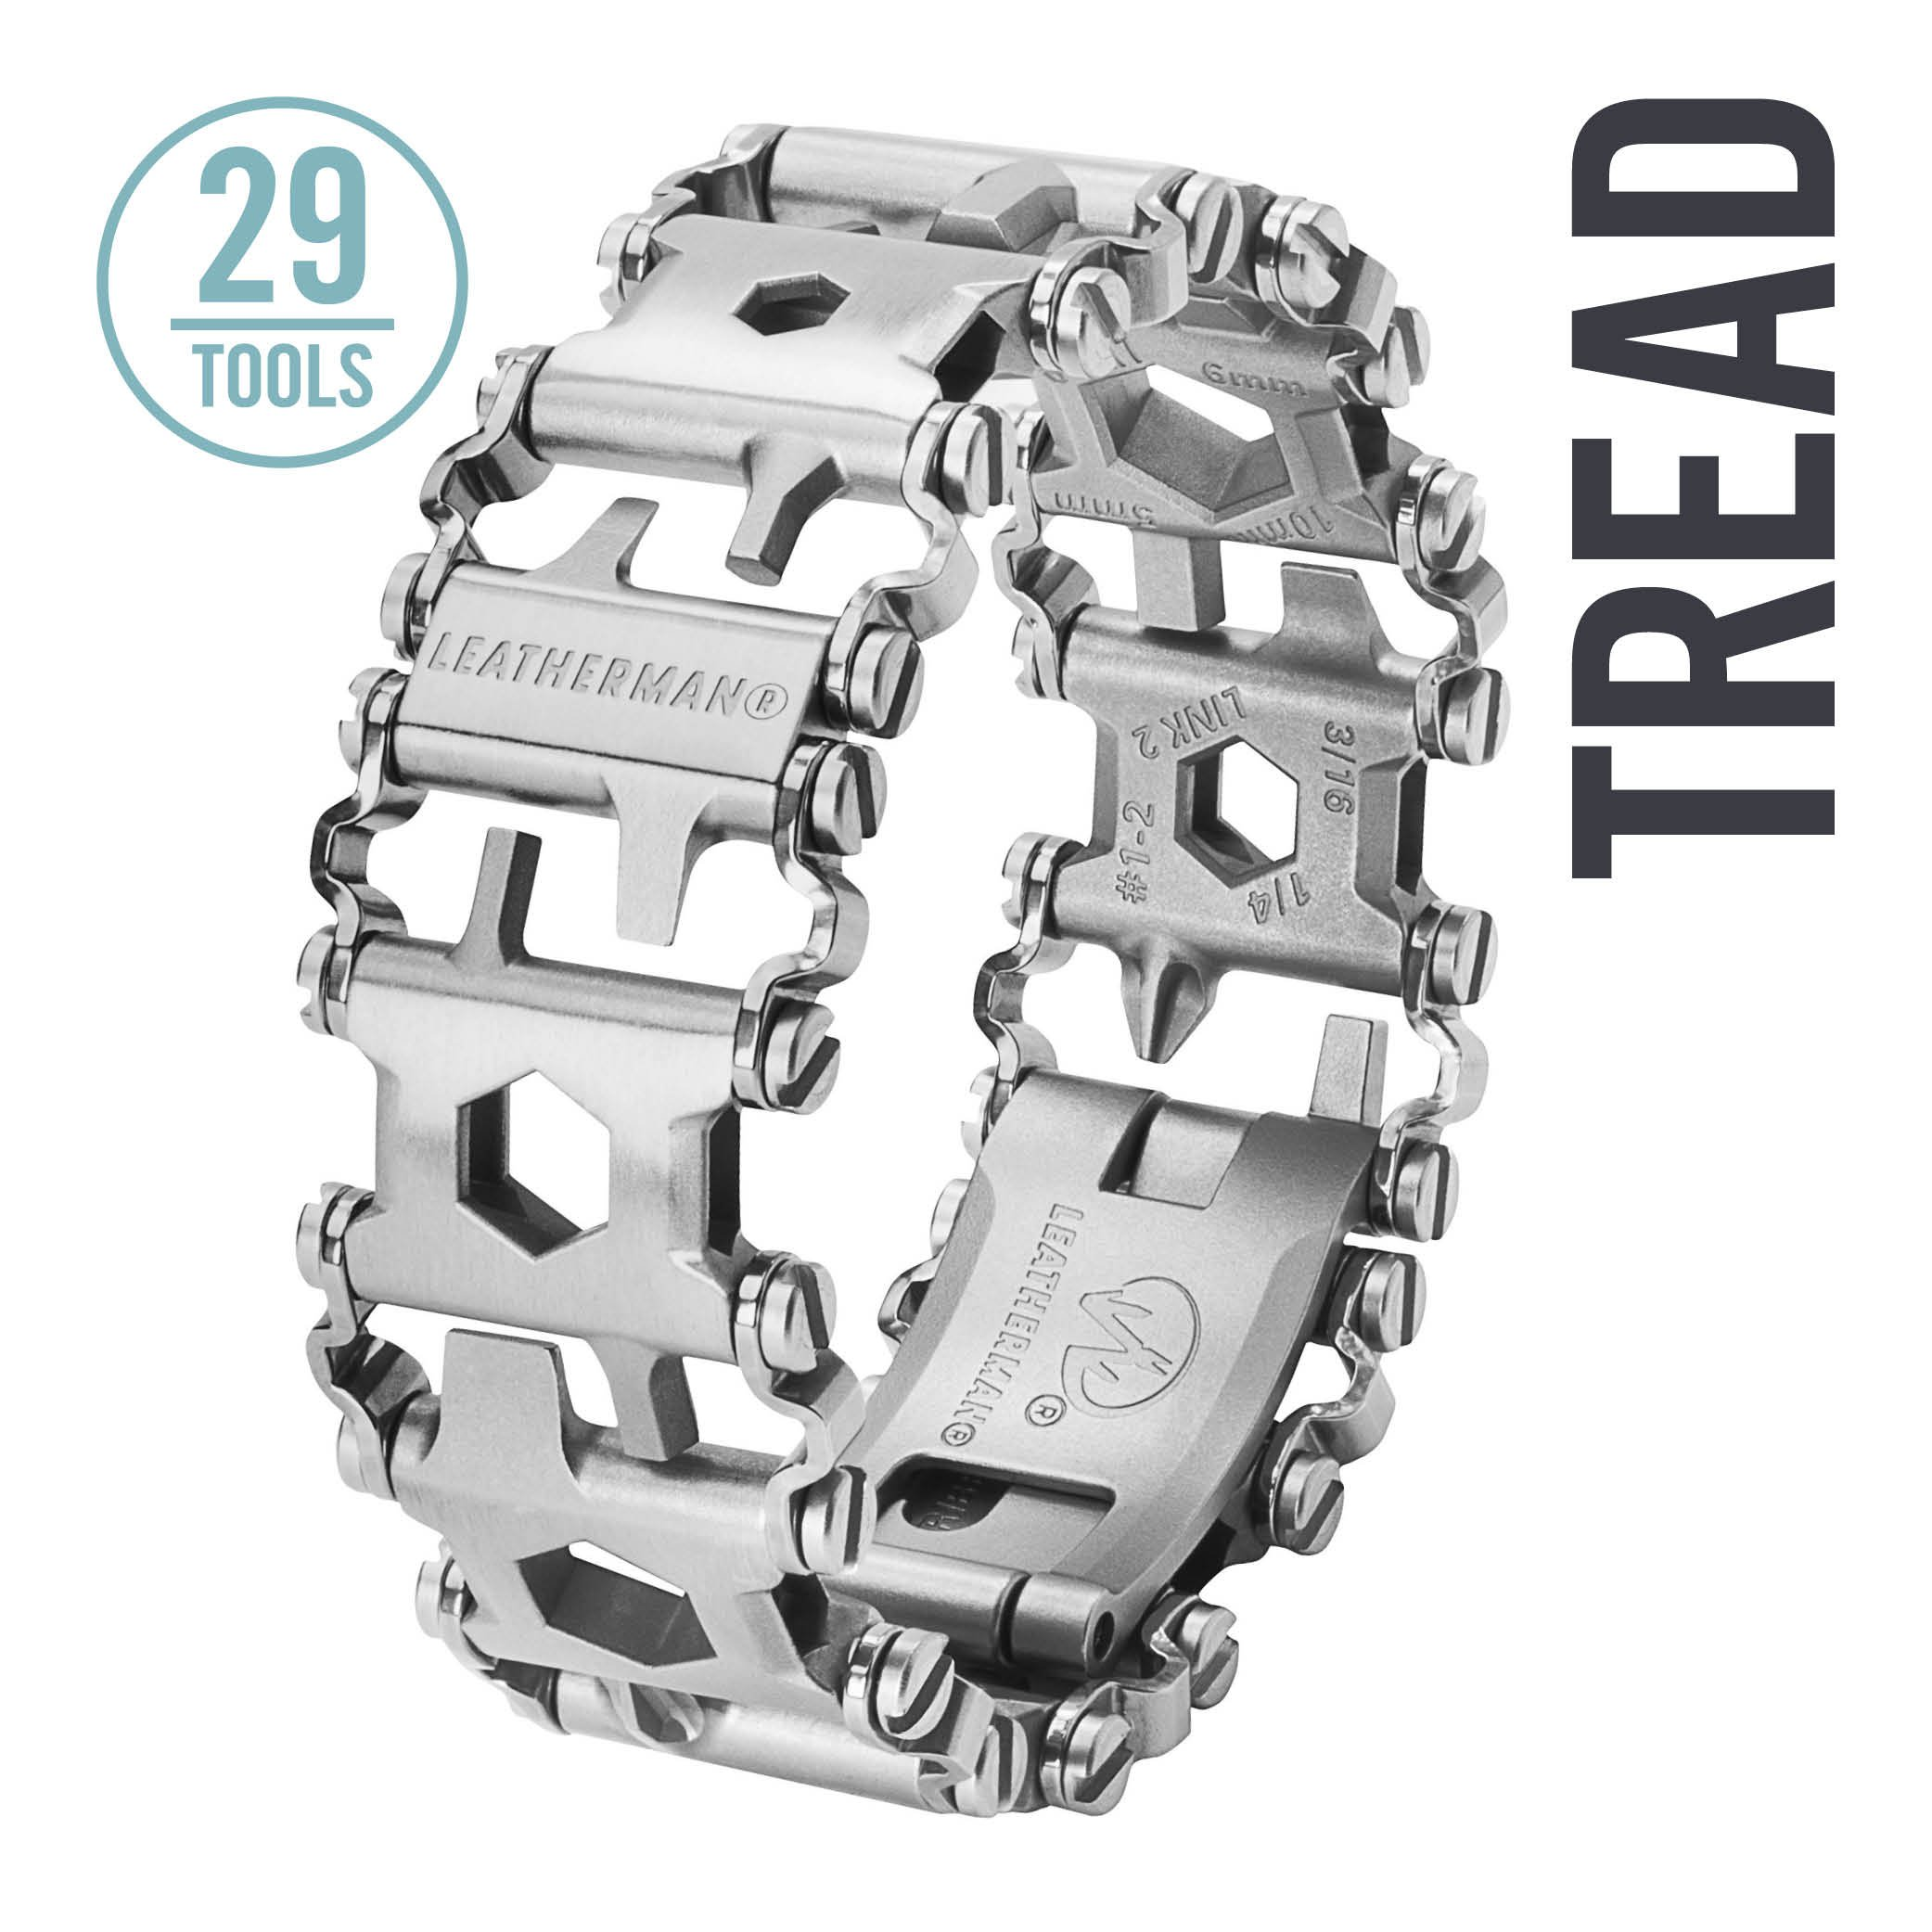 Leatherman - Tread Bracelet, The Travel Friendly Wearable Multitool, Stainless Steel